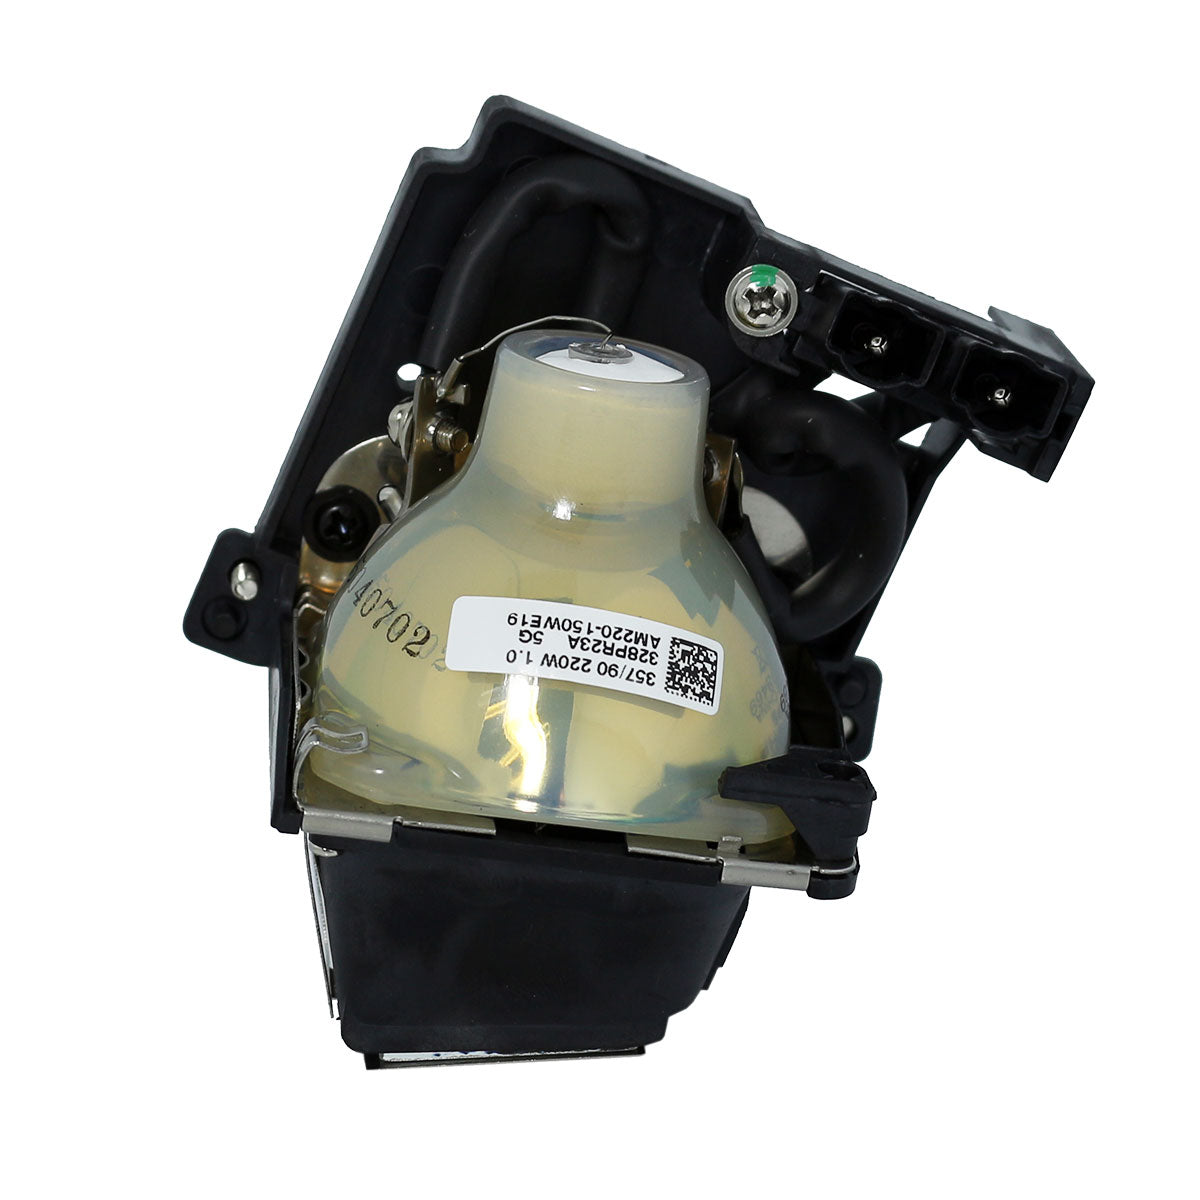 Xerox 53-0050-000 Philips Projector Lamp Module